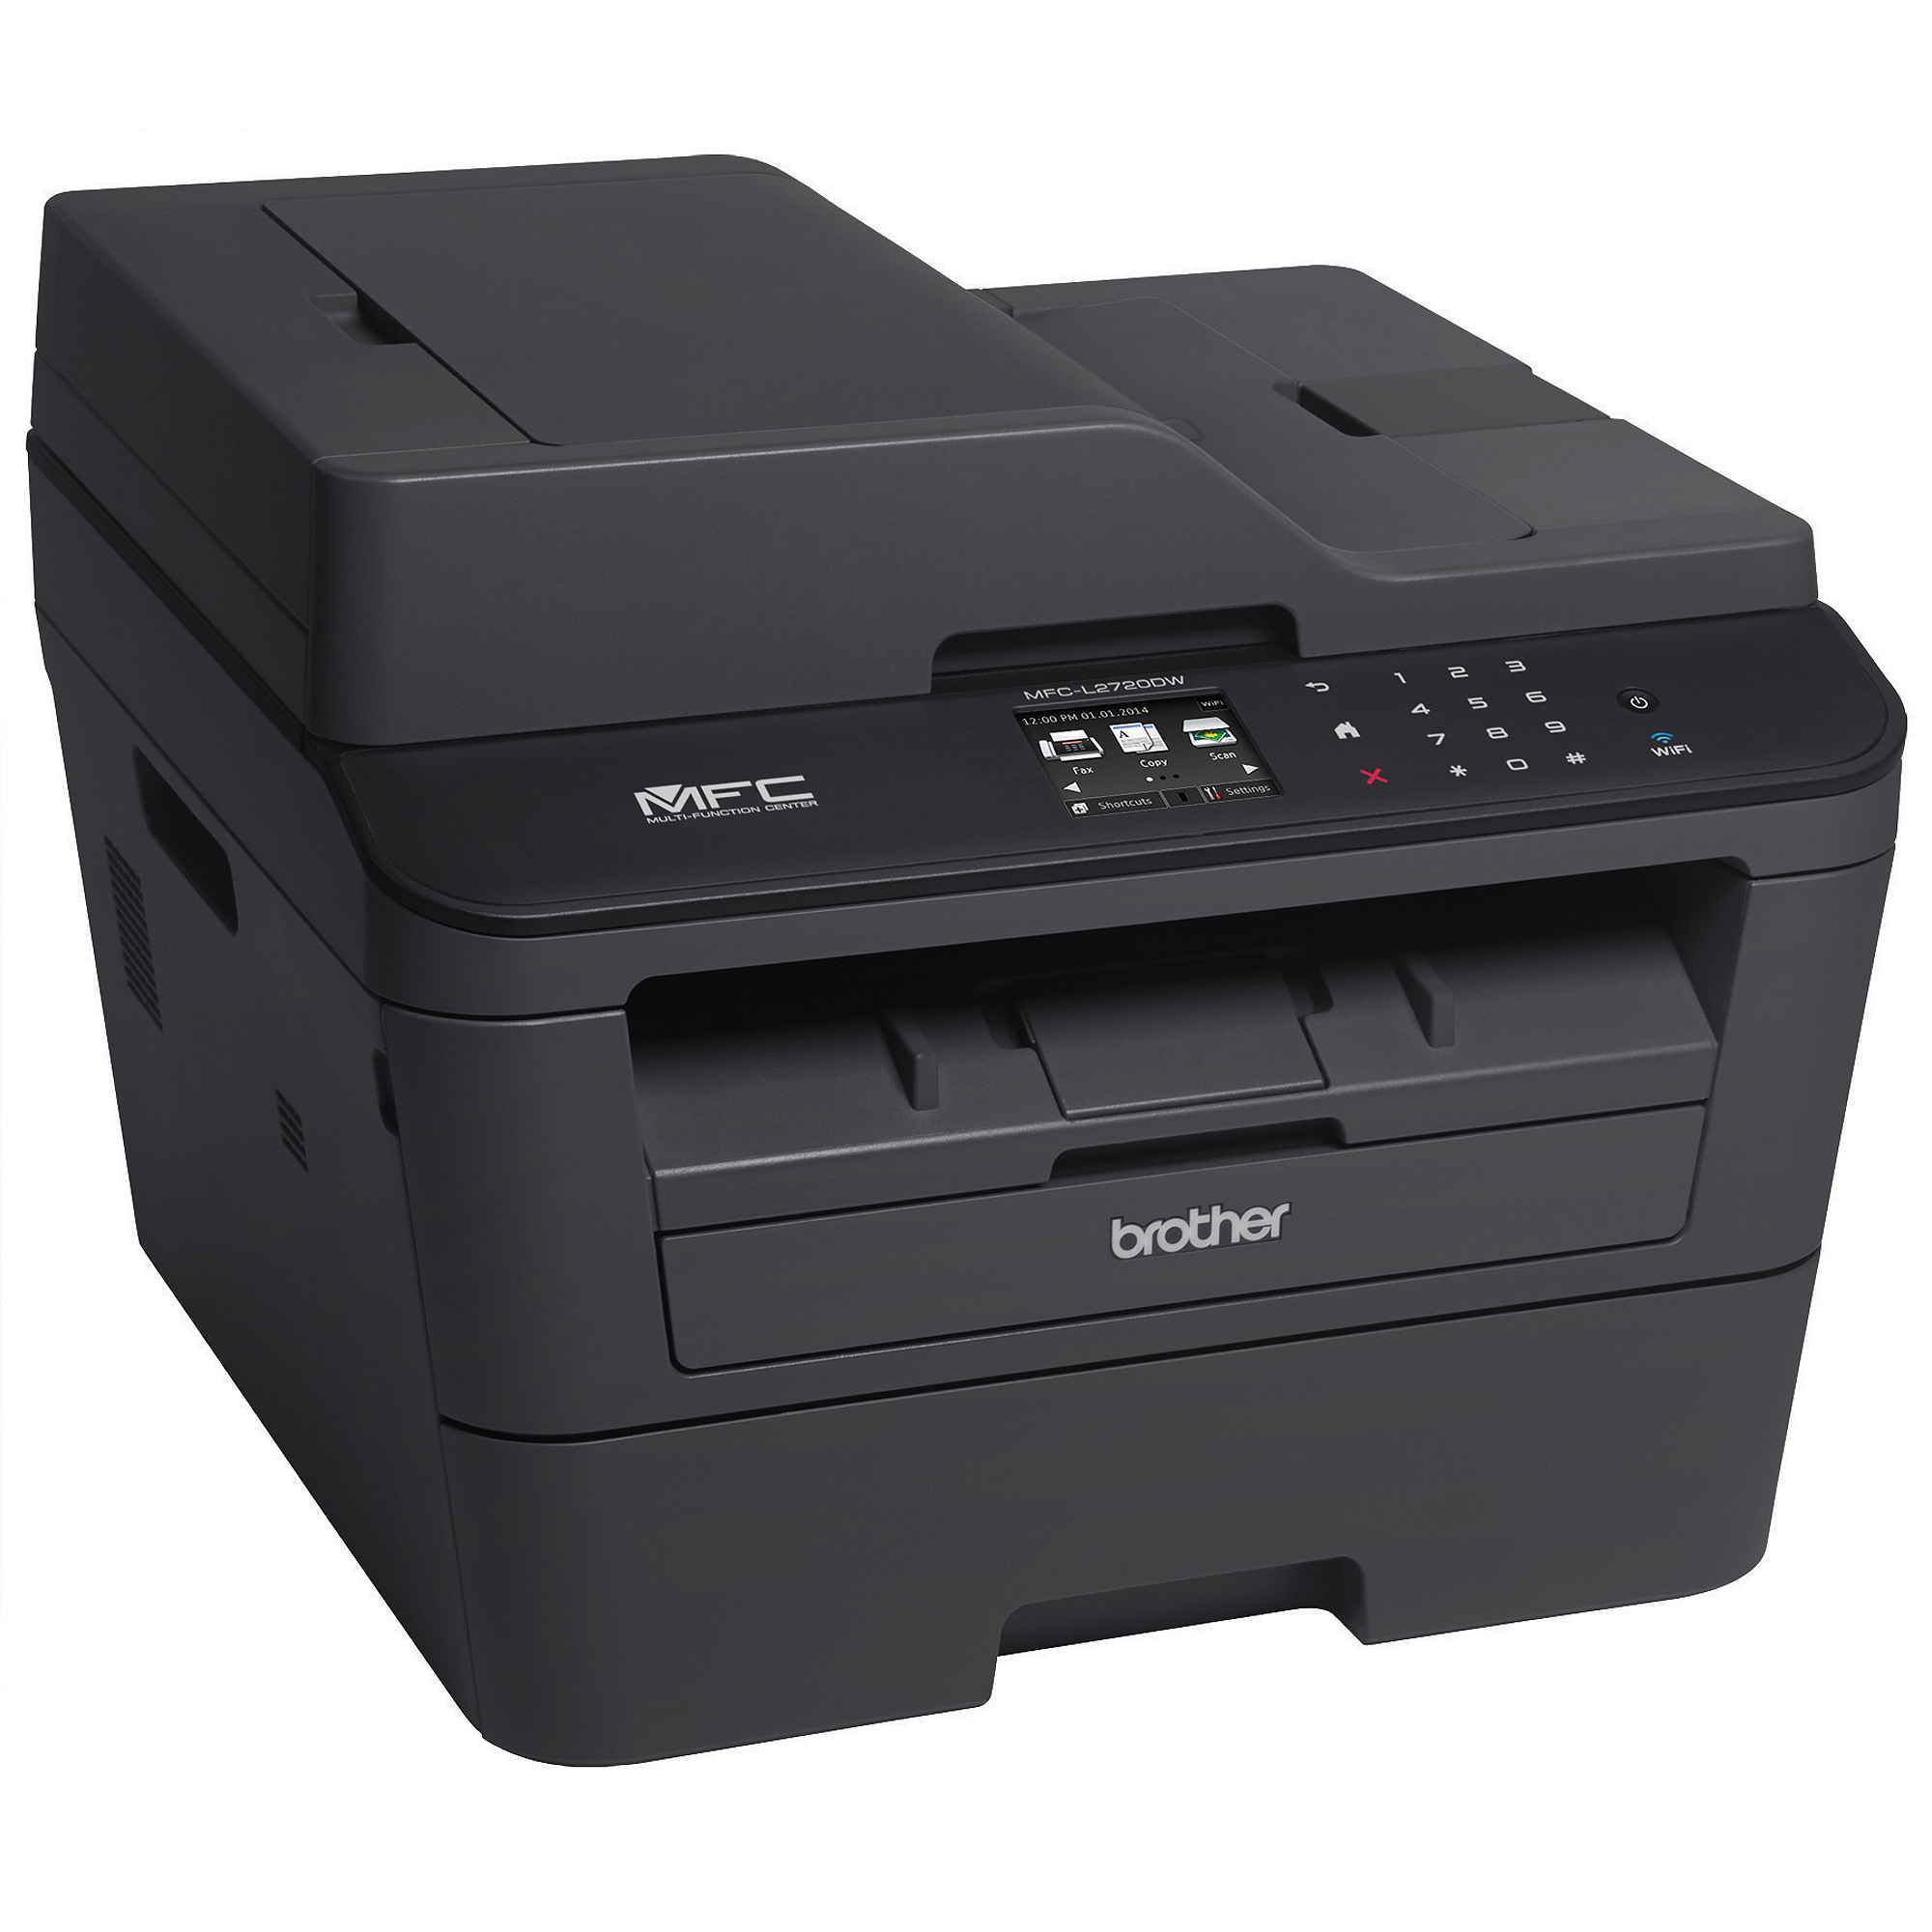 all in one printer and fax machine